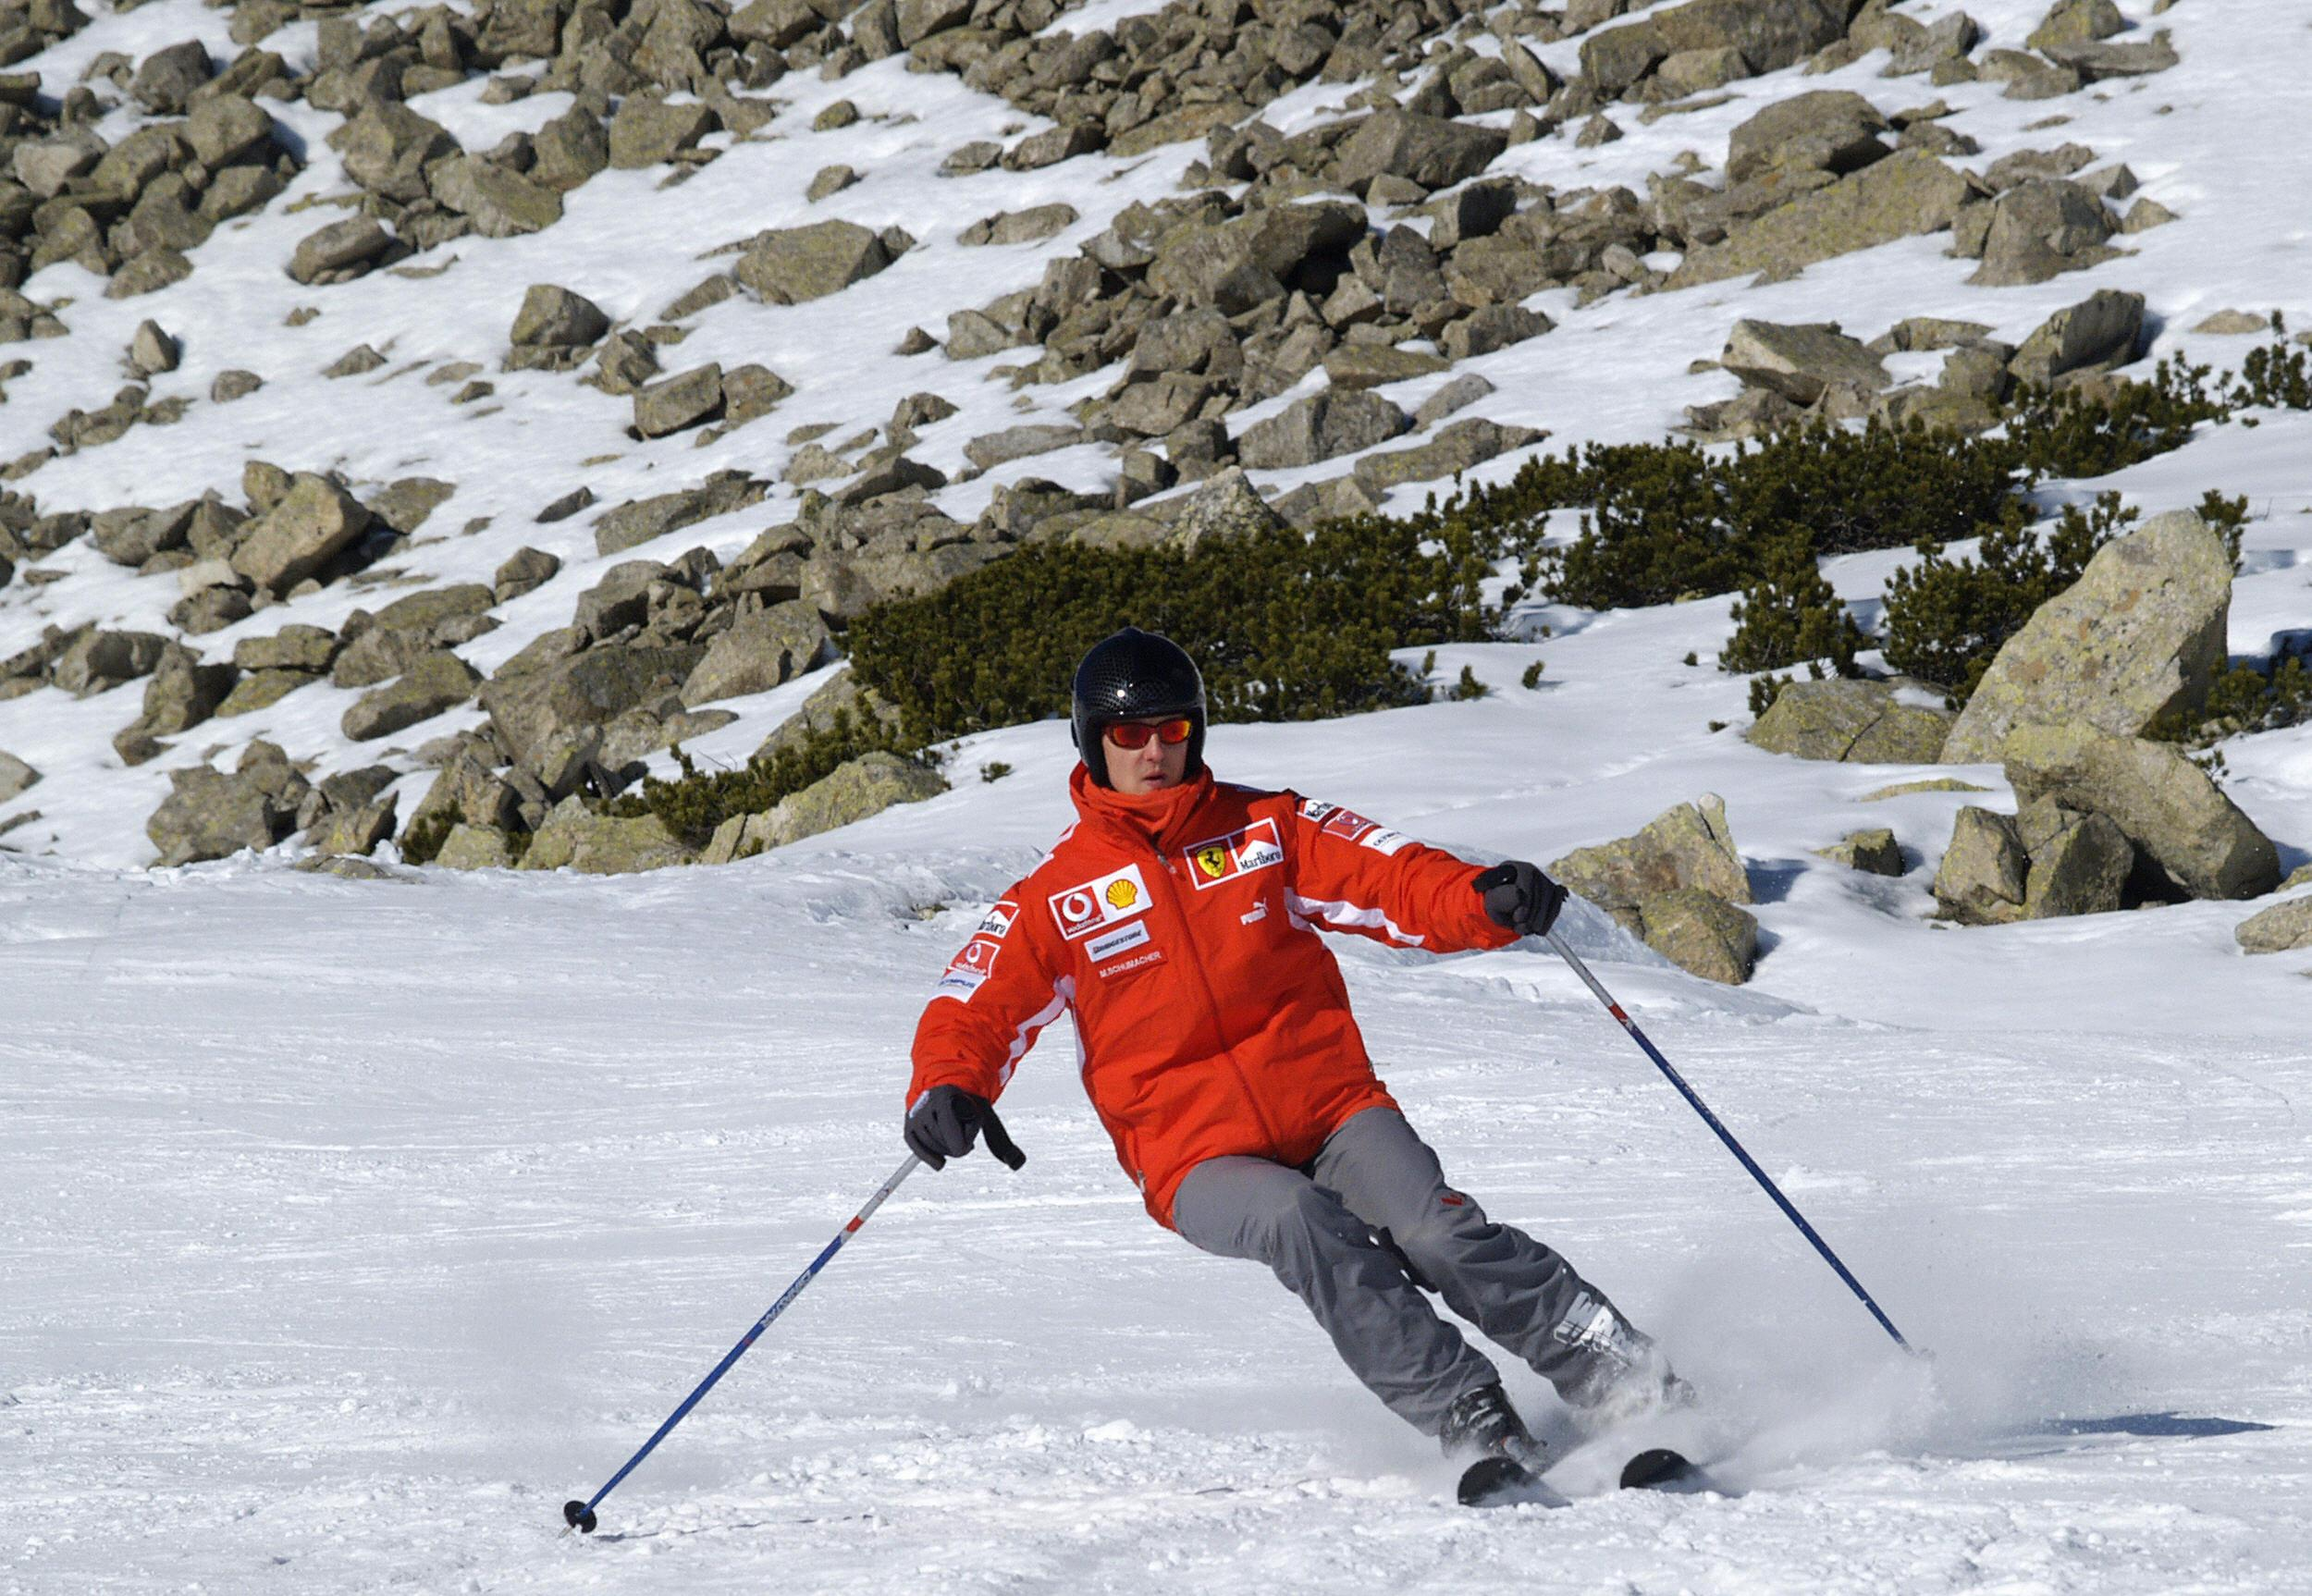 Schumacher, an avid skier, hit his head on rocks on December 29, 2013 as he was skiing with his son Mick